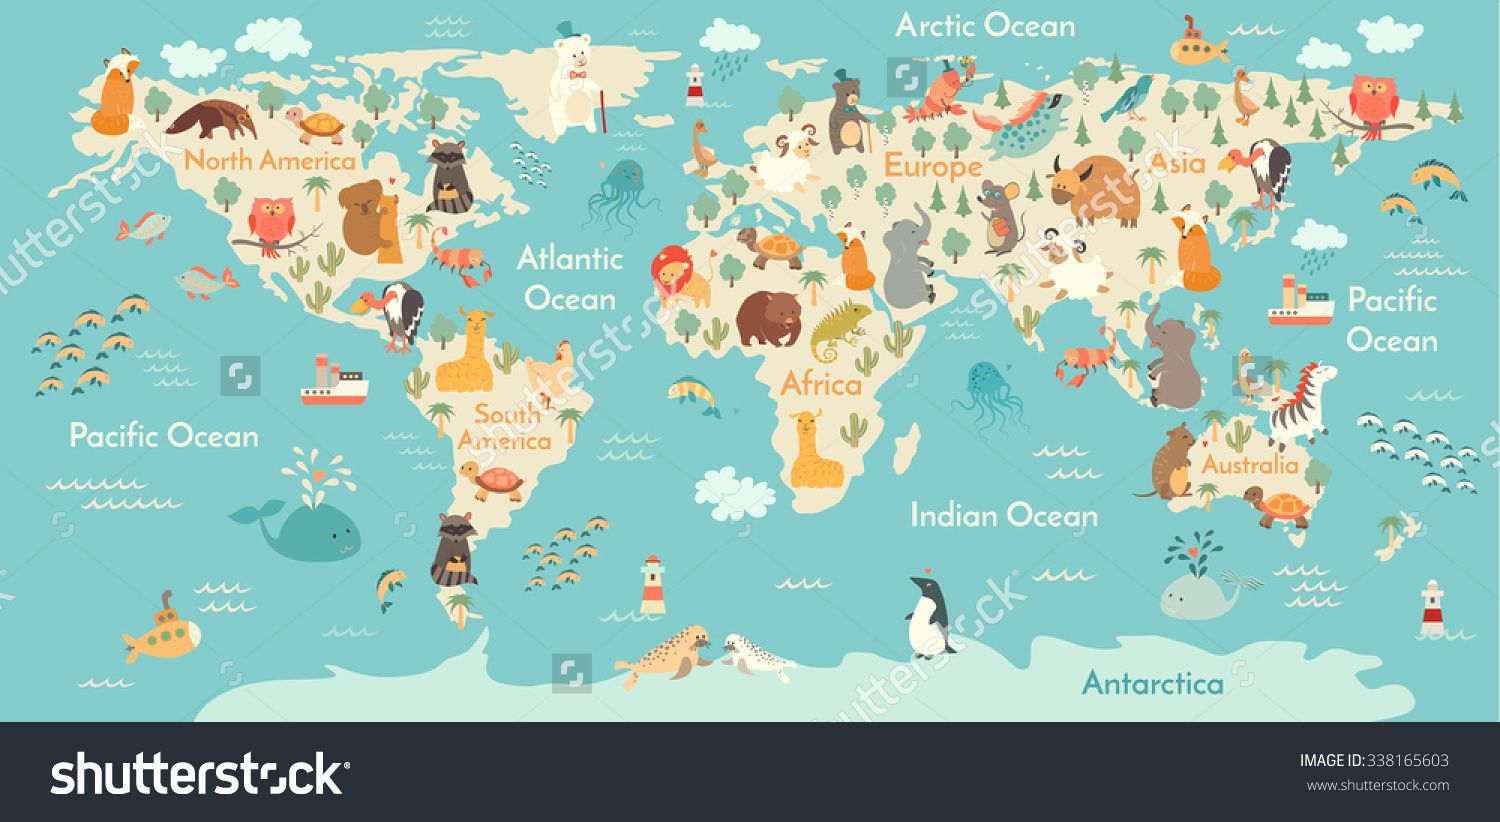 Animals world map world map for childrenkids animals poster animals world map world map for childrenkids animals poster continent animals gumiabroncs Images